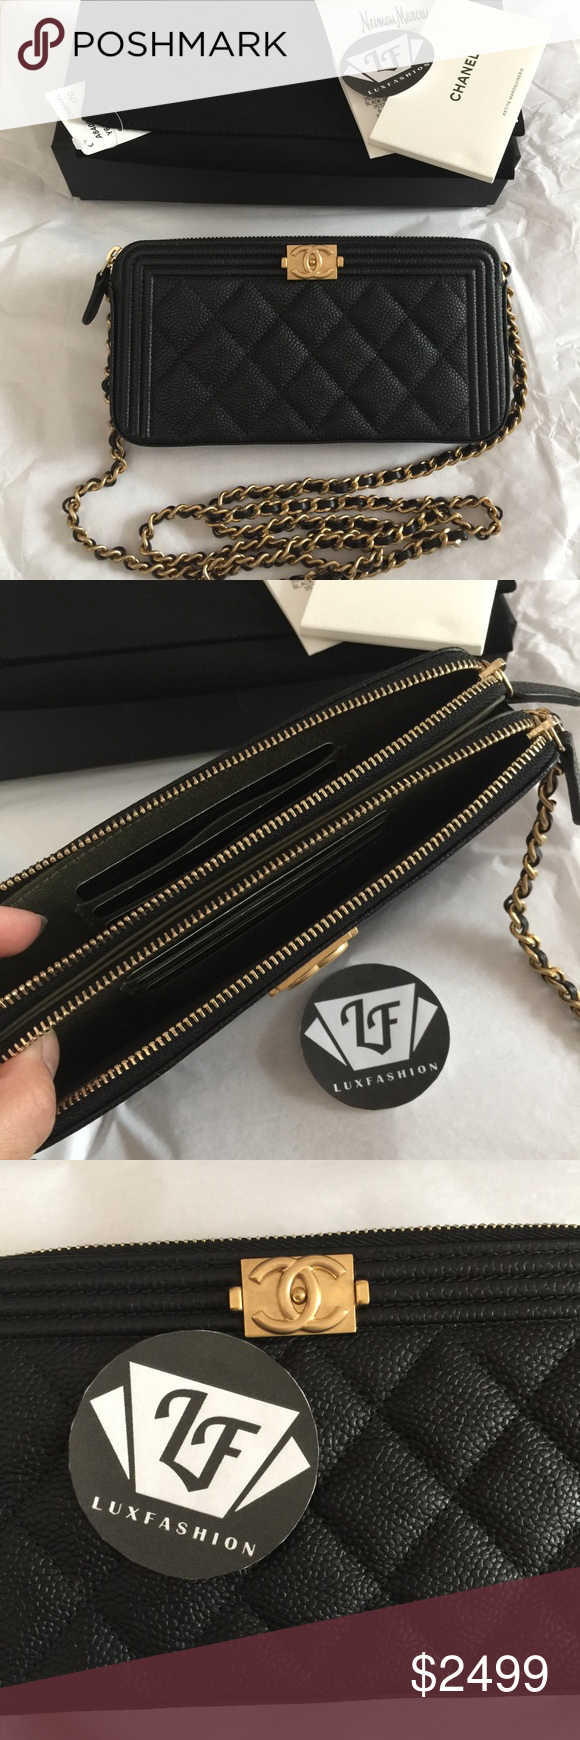 797b3282cbaf Chanel Boy Double Zip Wallet on Chain Black Caviar Brand New Chanel Boy Zip  Wallet on Chain in Black Caviar with Gold Hardware. It has detachable  strap, ...